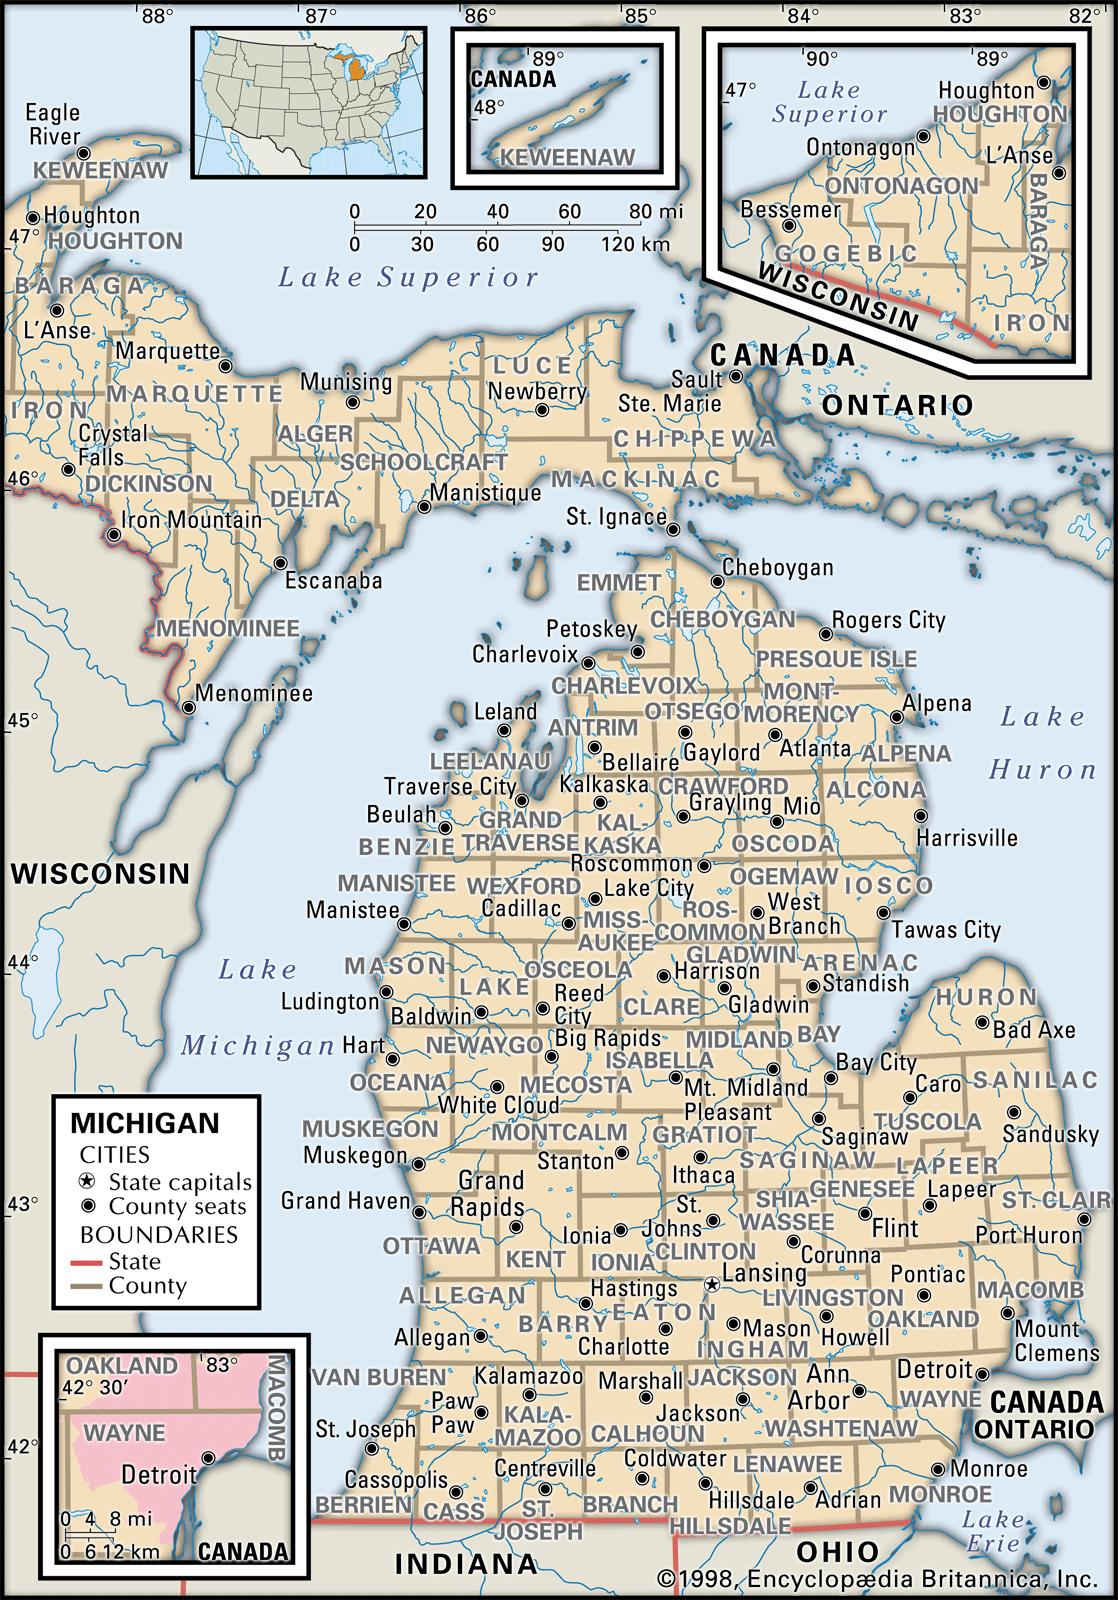 Michigan – The Wolf Intelligencer